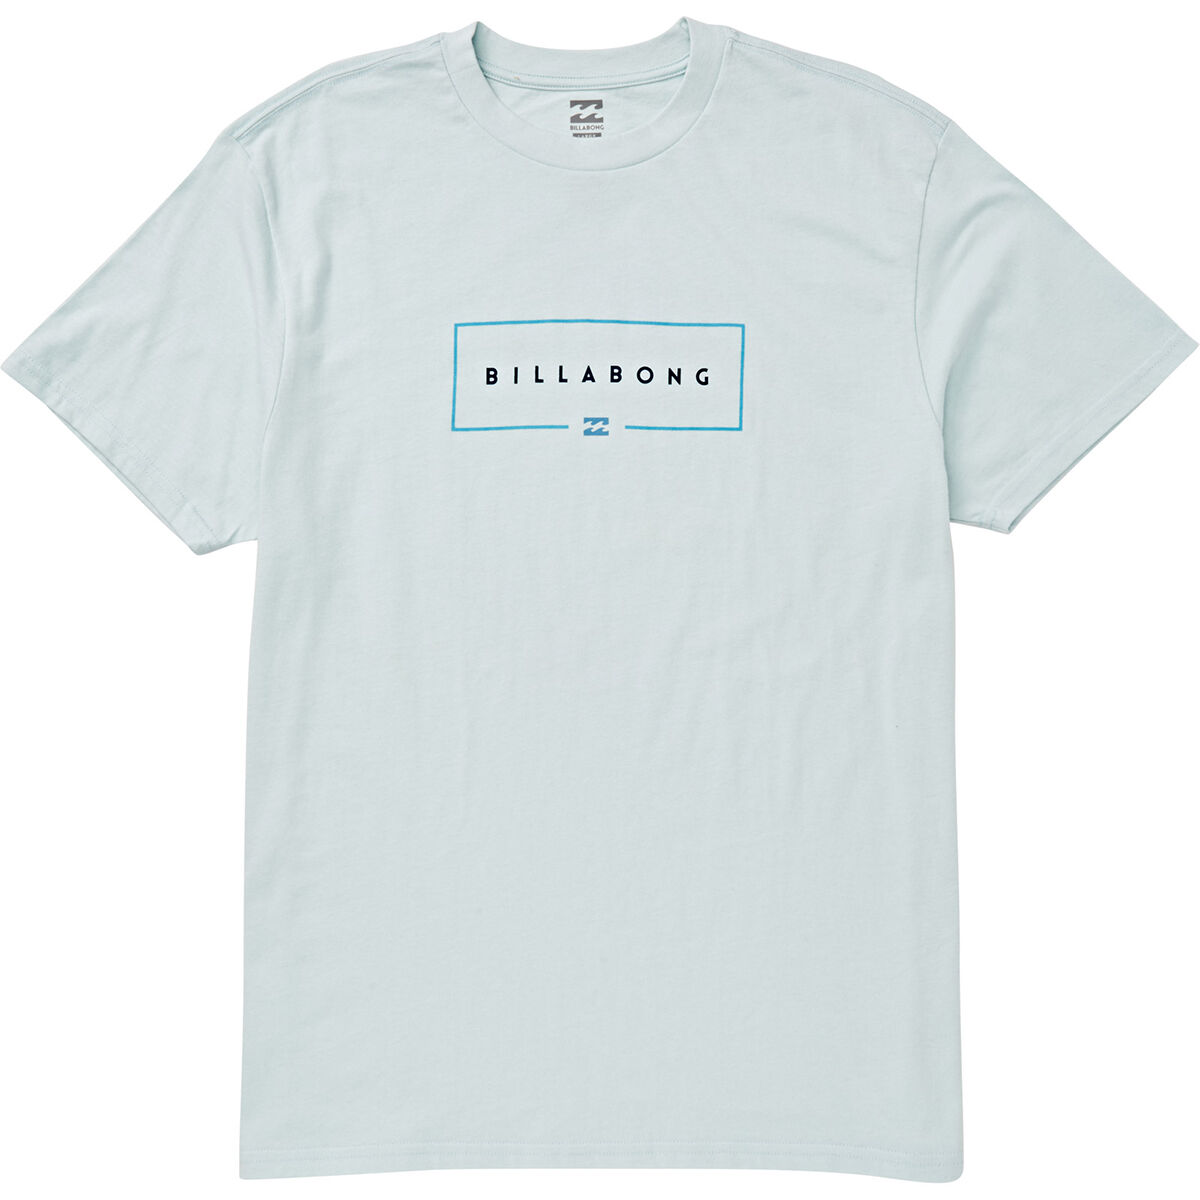 Billabong Men's Short-Sleeve Graphic Tee - Blue, XL